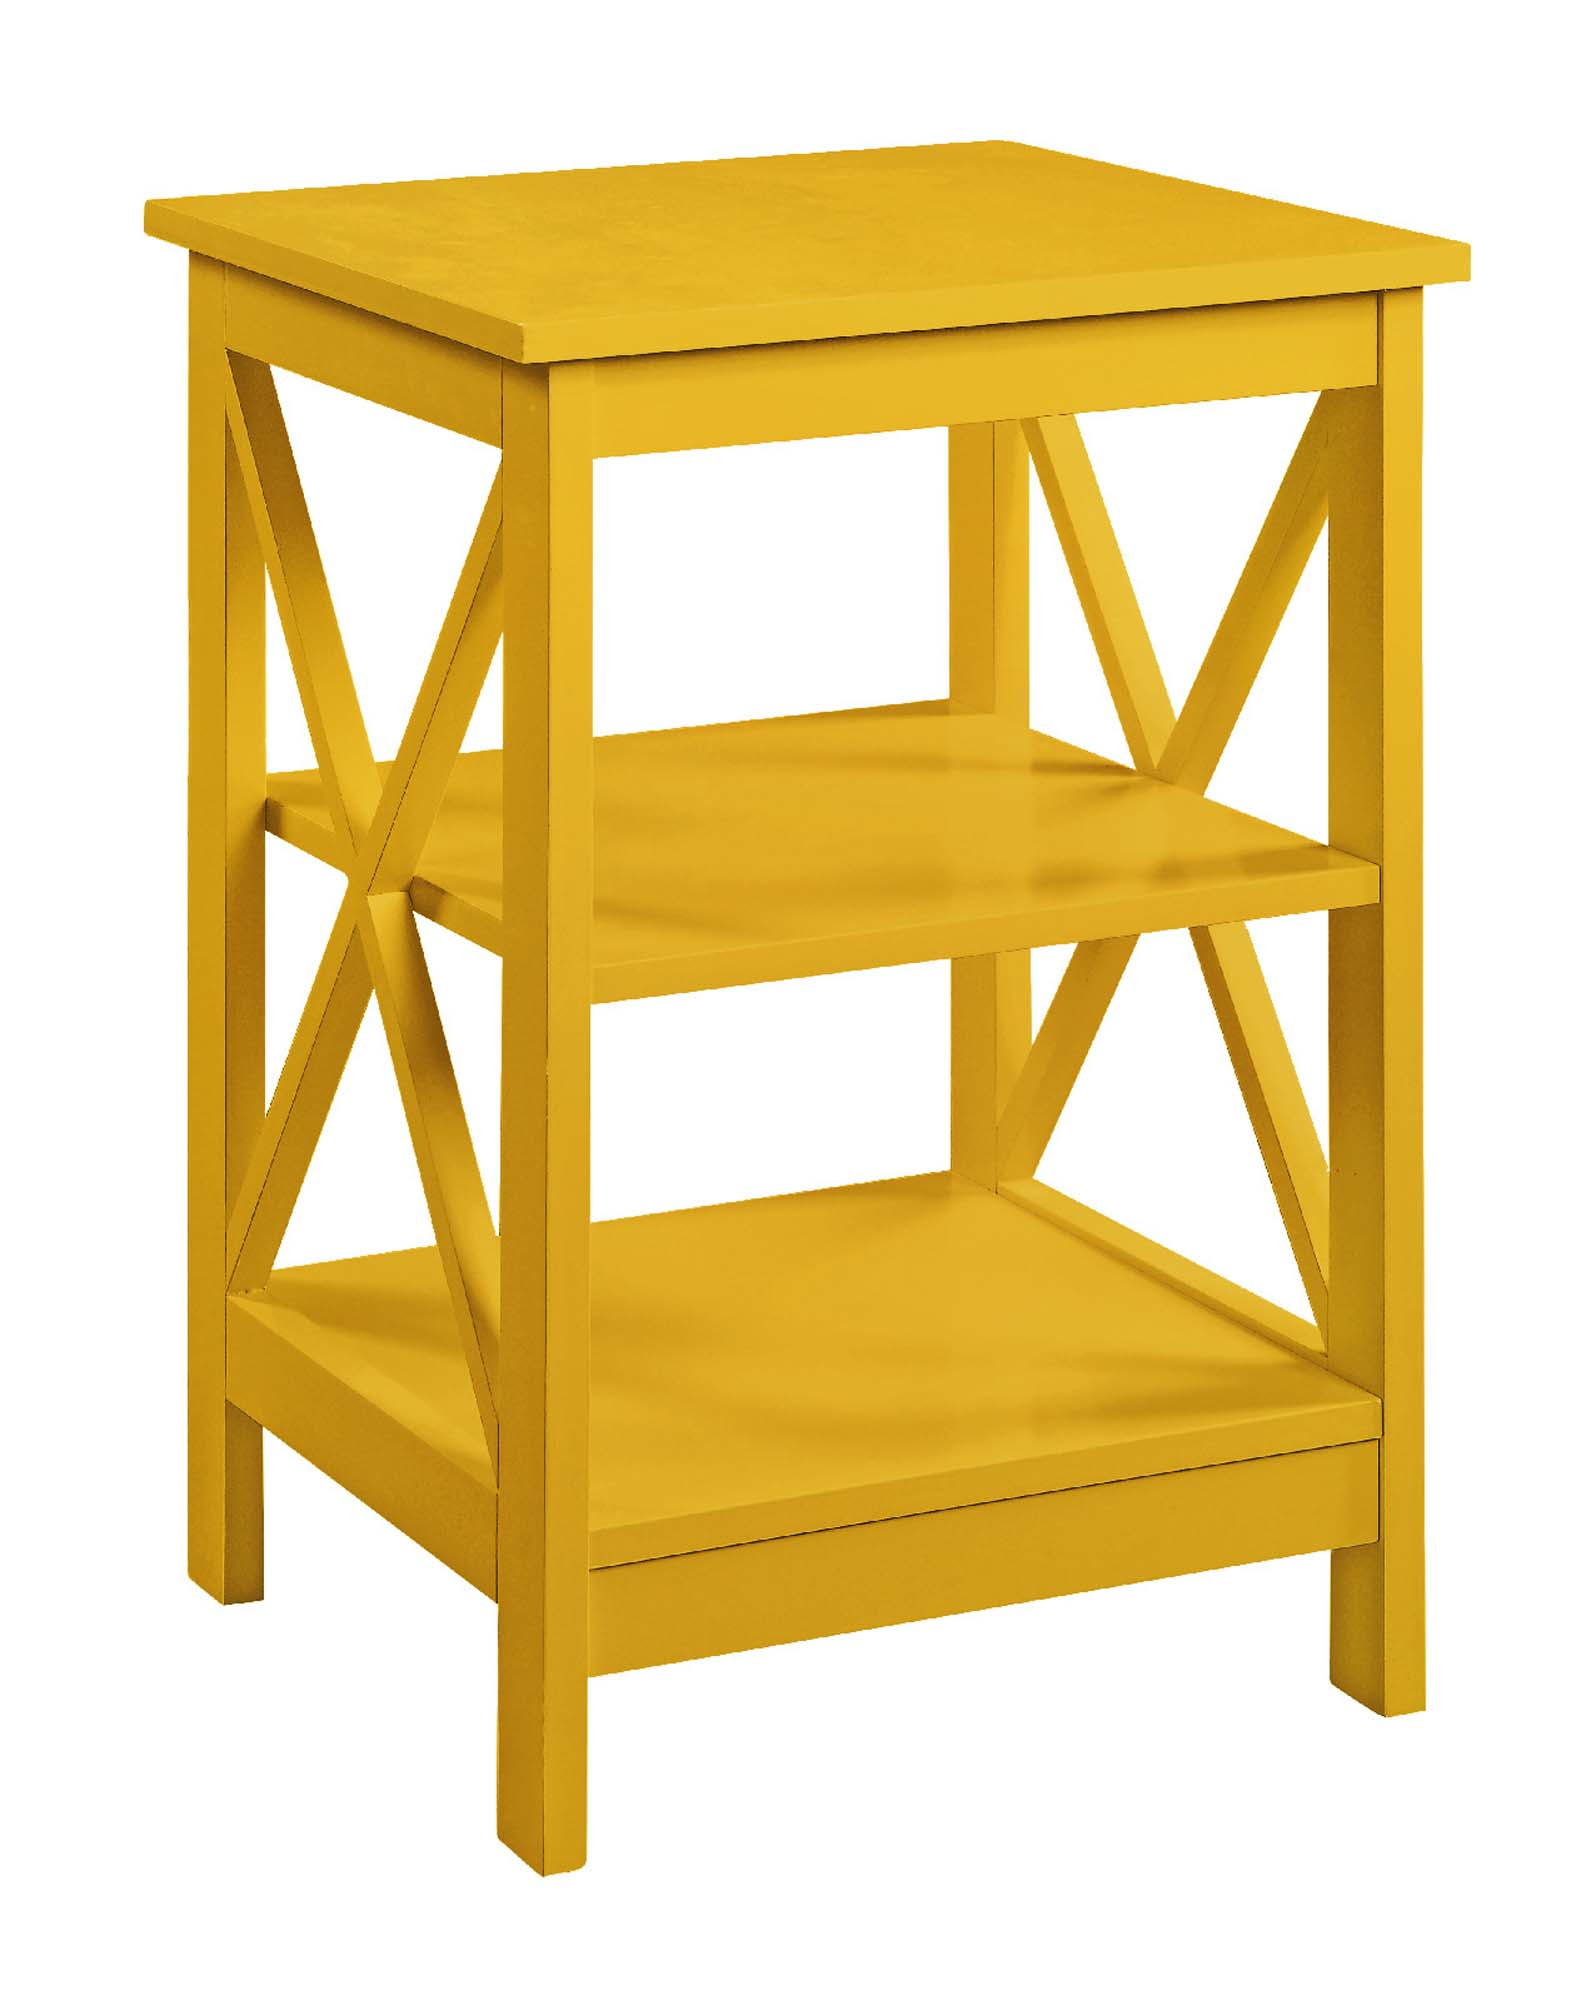 Convenience Concepts 203085Y Oxford End Table, Yellow - 24 x 15.75 x 15.75 in.